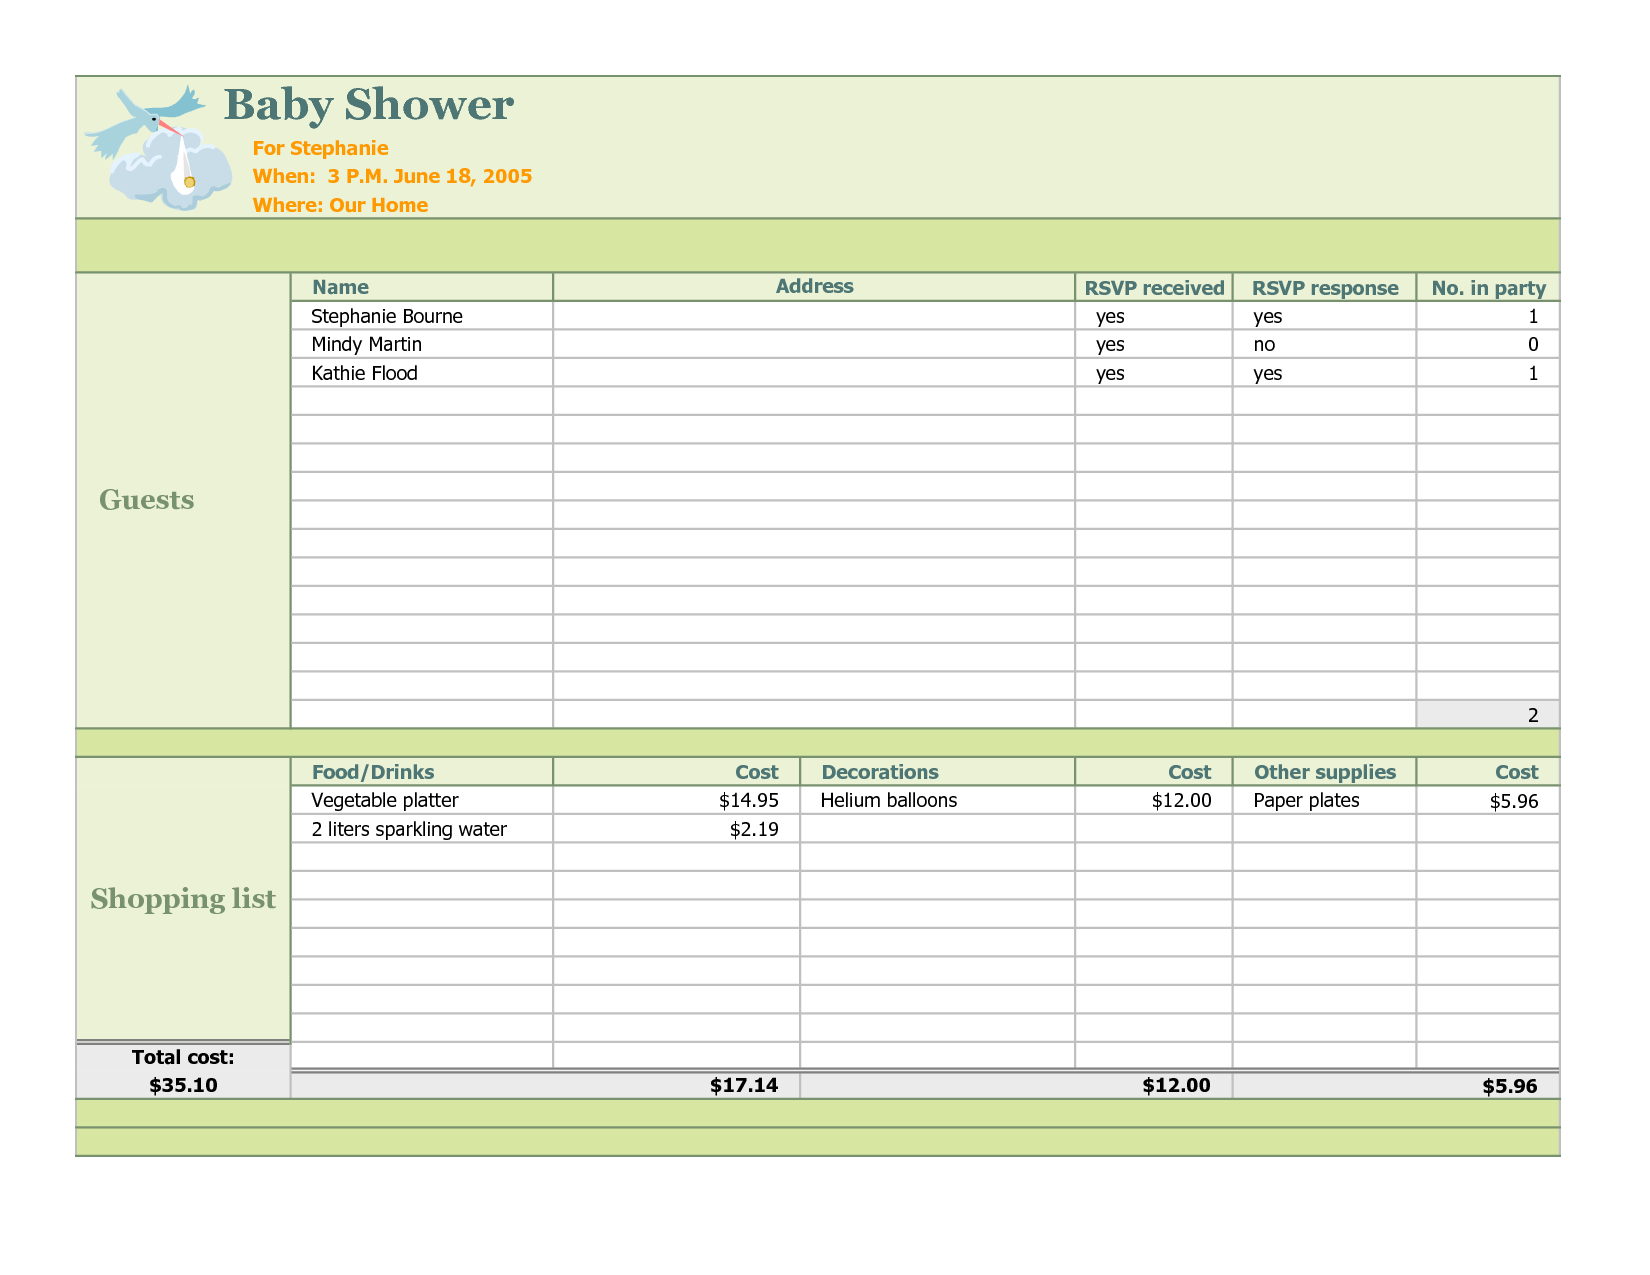 Bridal Shower Planning Spreadsheet In Photo : Baby Shower Registry Checklist Image